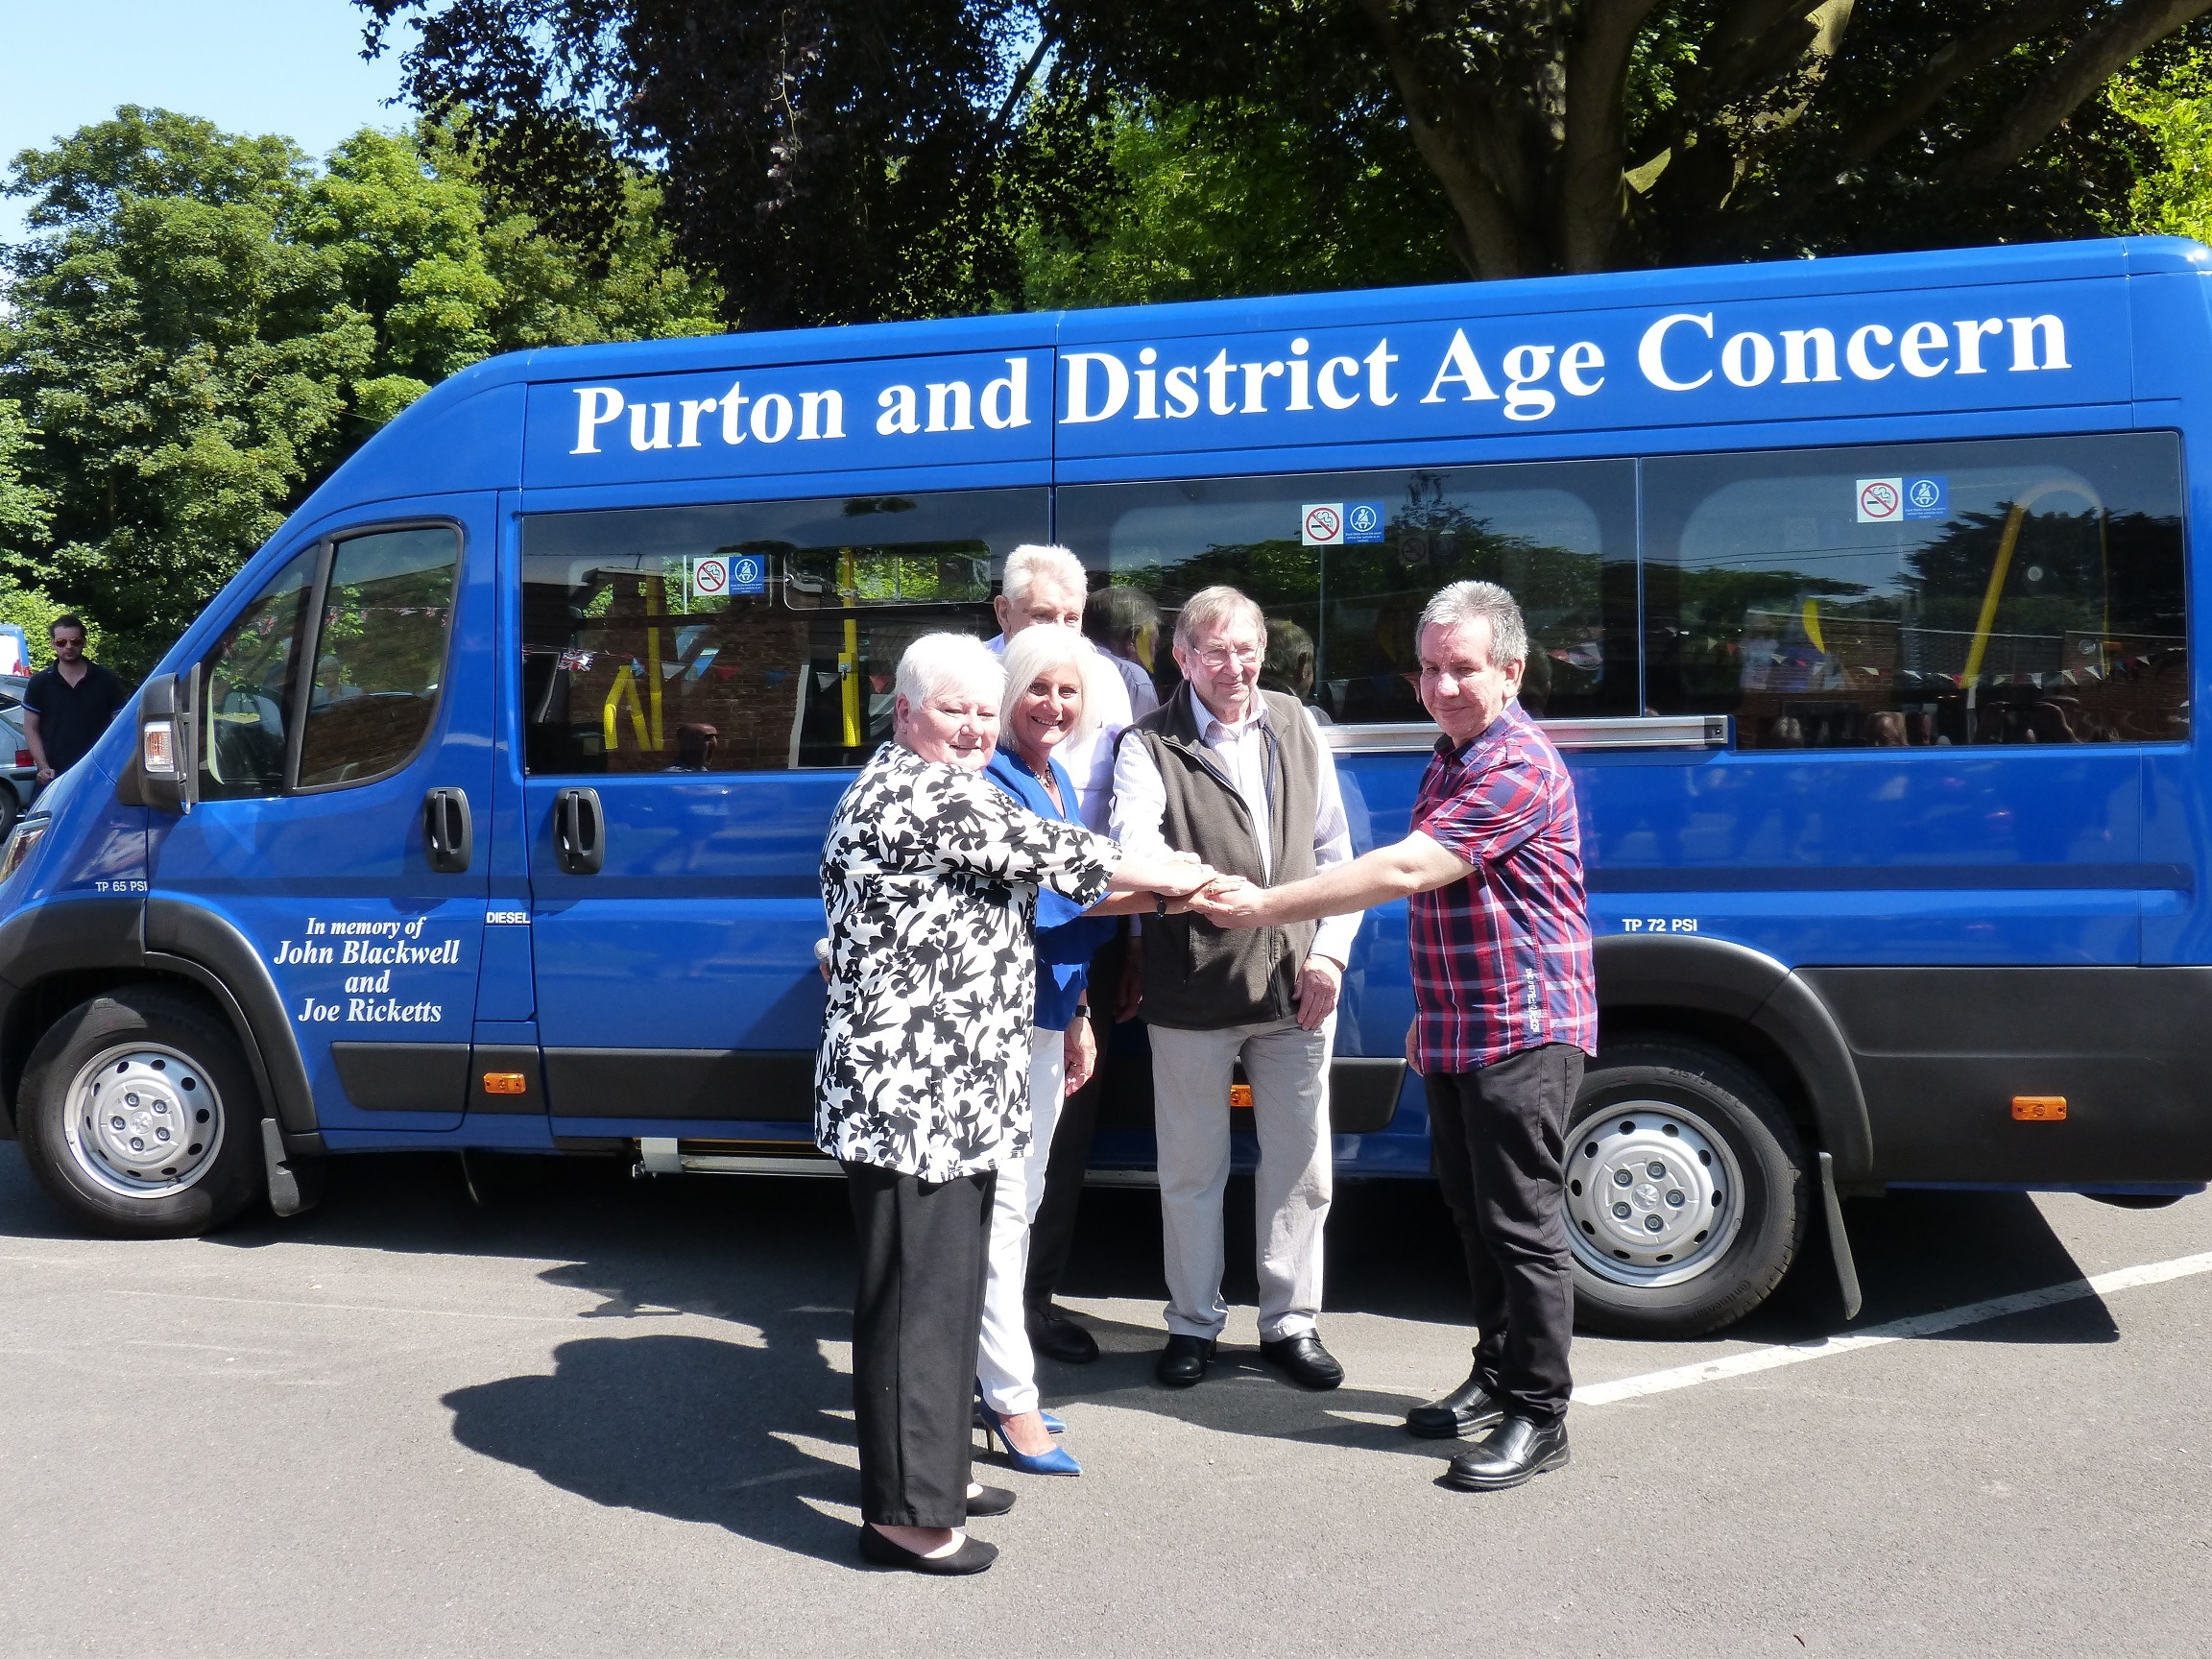 Purton and District Age Concern acquires new minibus